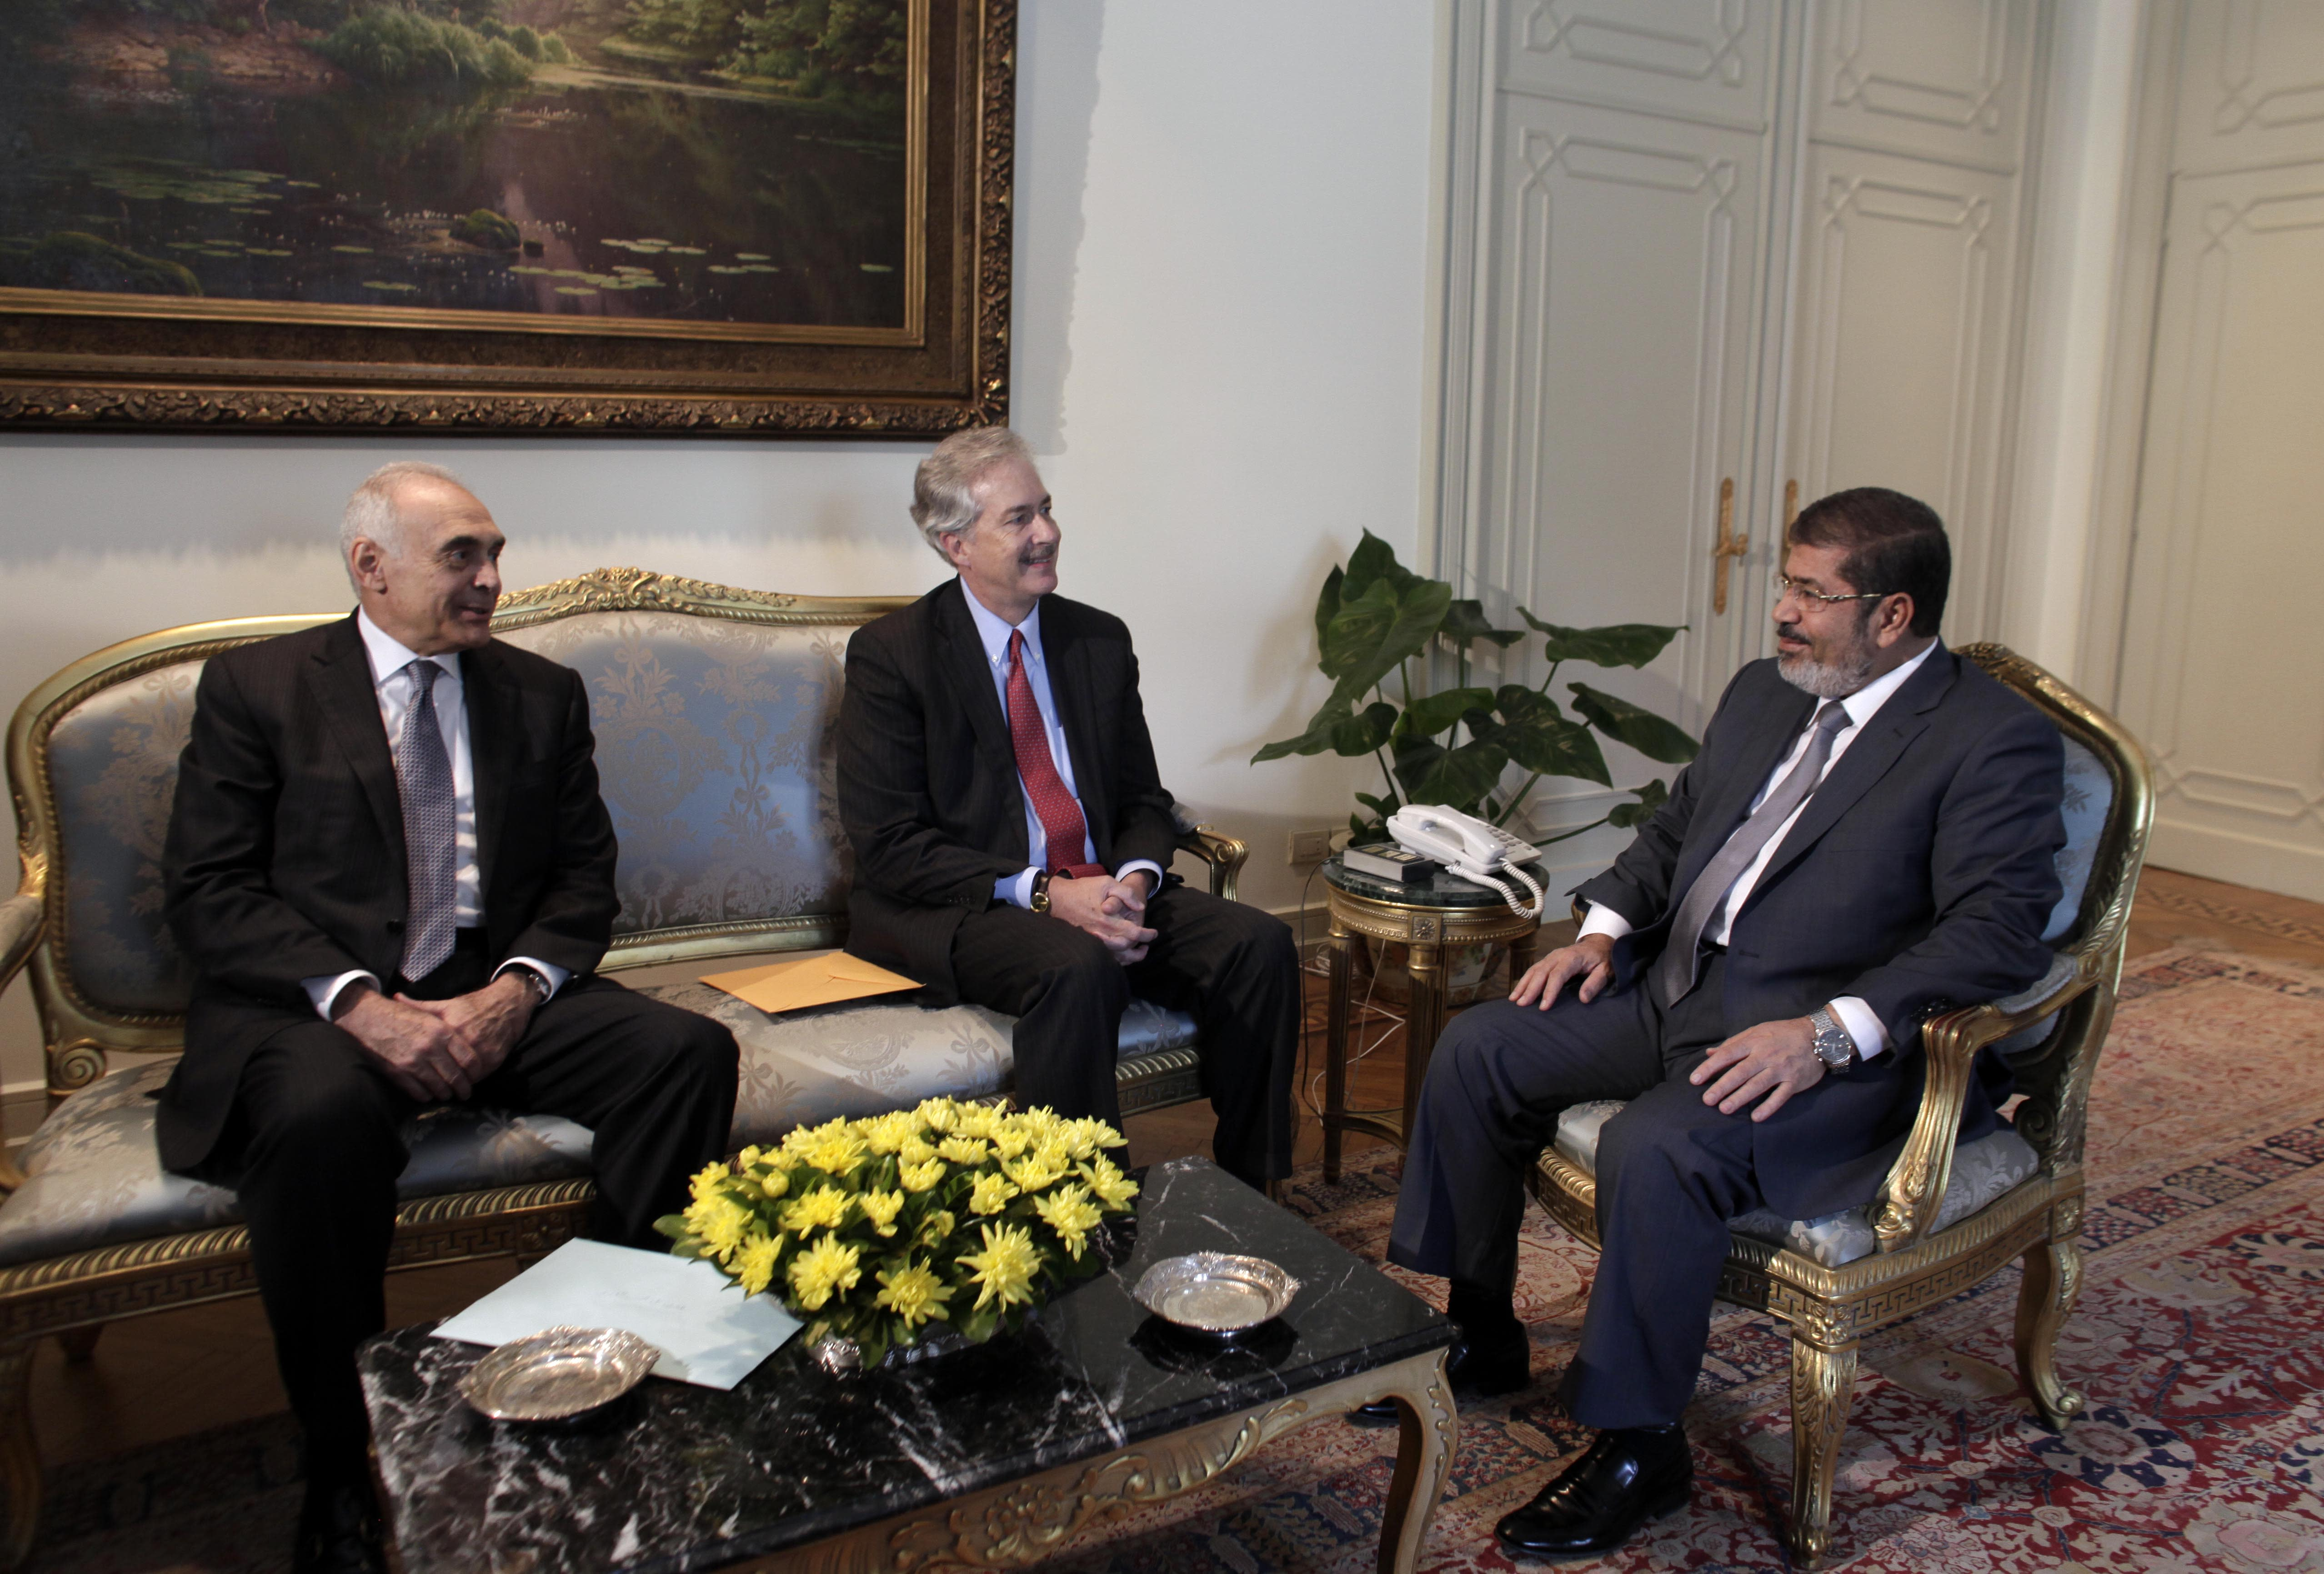 Egyptian Foreign Minister Mohammed Kamel Amr, left, meets woth U.S. Undersecretary of State William Burns, center, and President Mohammed Morsi, right, at the Presidential palace in Cairo, Egypt, Sunday, July 8, 2012. Morsi is the country's first democratically-elected president, first Islamist, and civilian to take office in Egypt. He was sworn in last week. (AP Photo/Maya Alleruzzo)